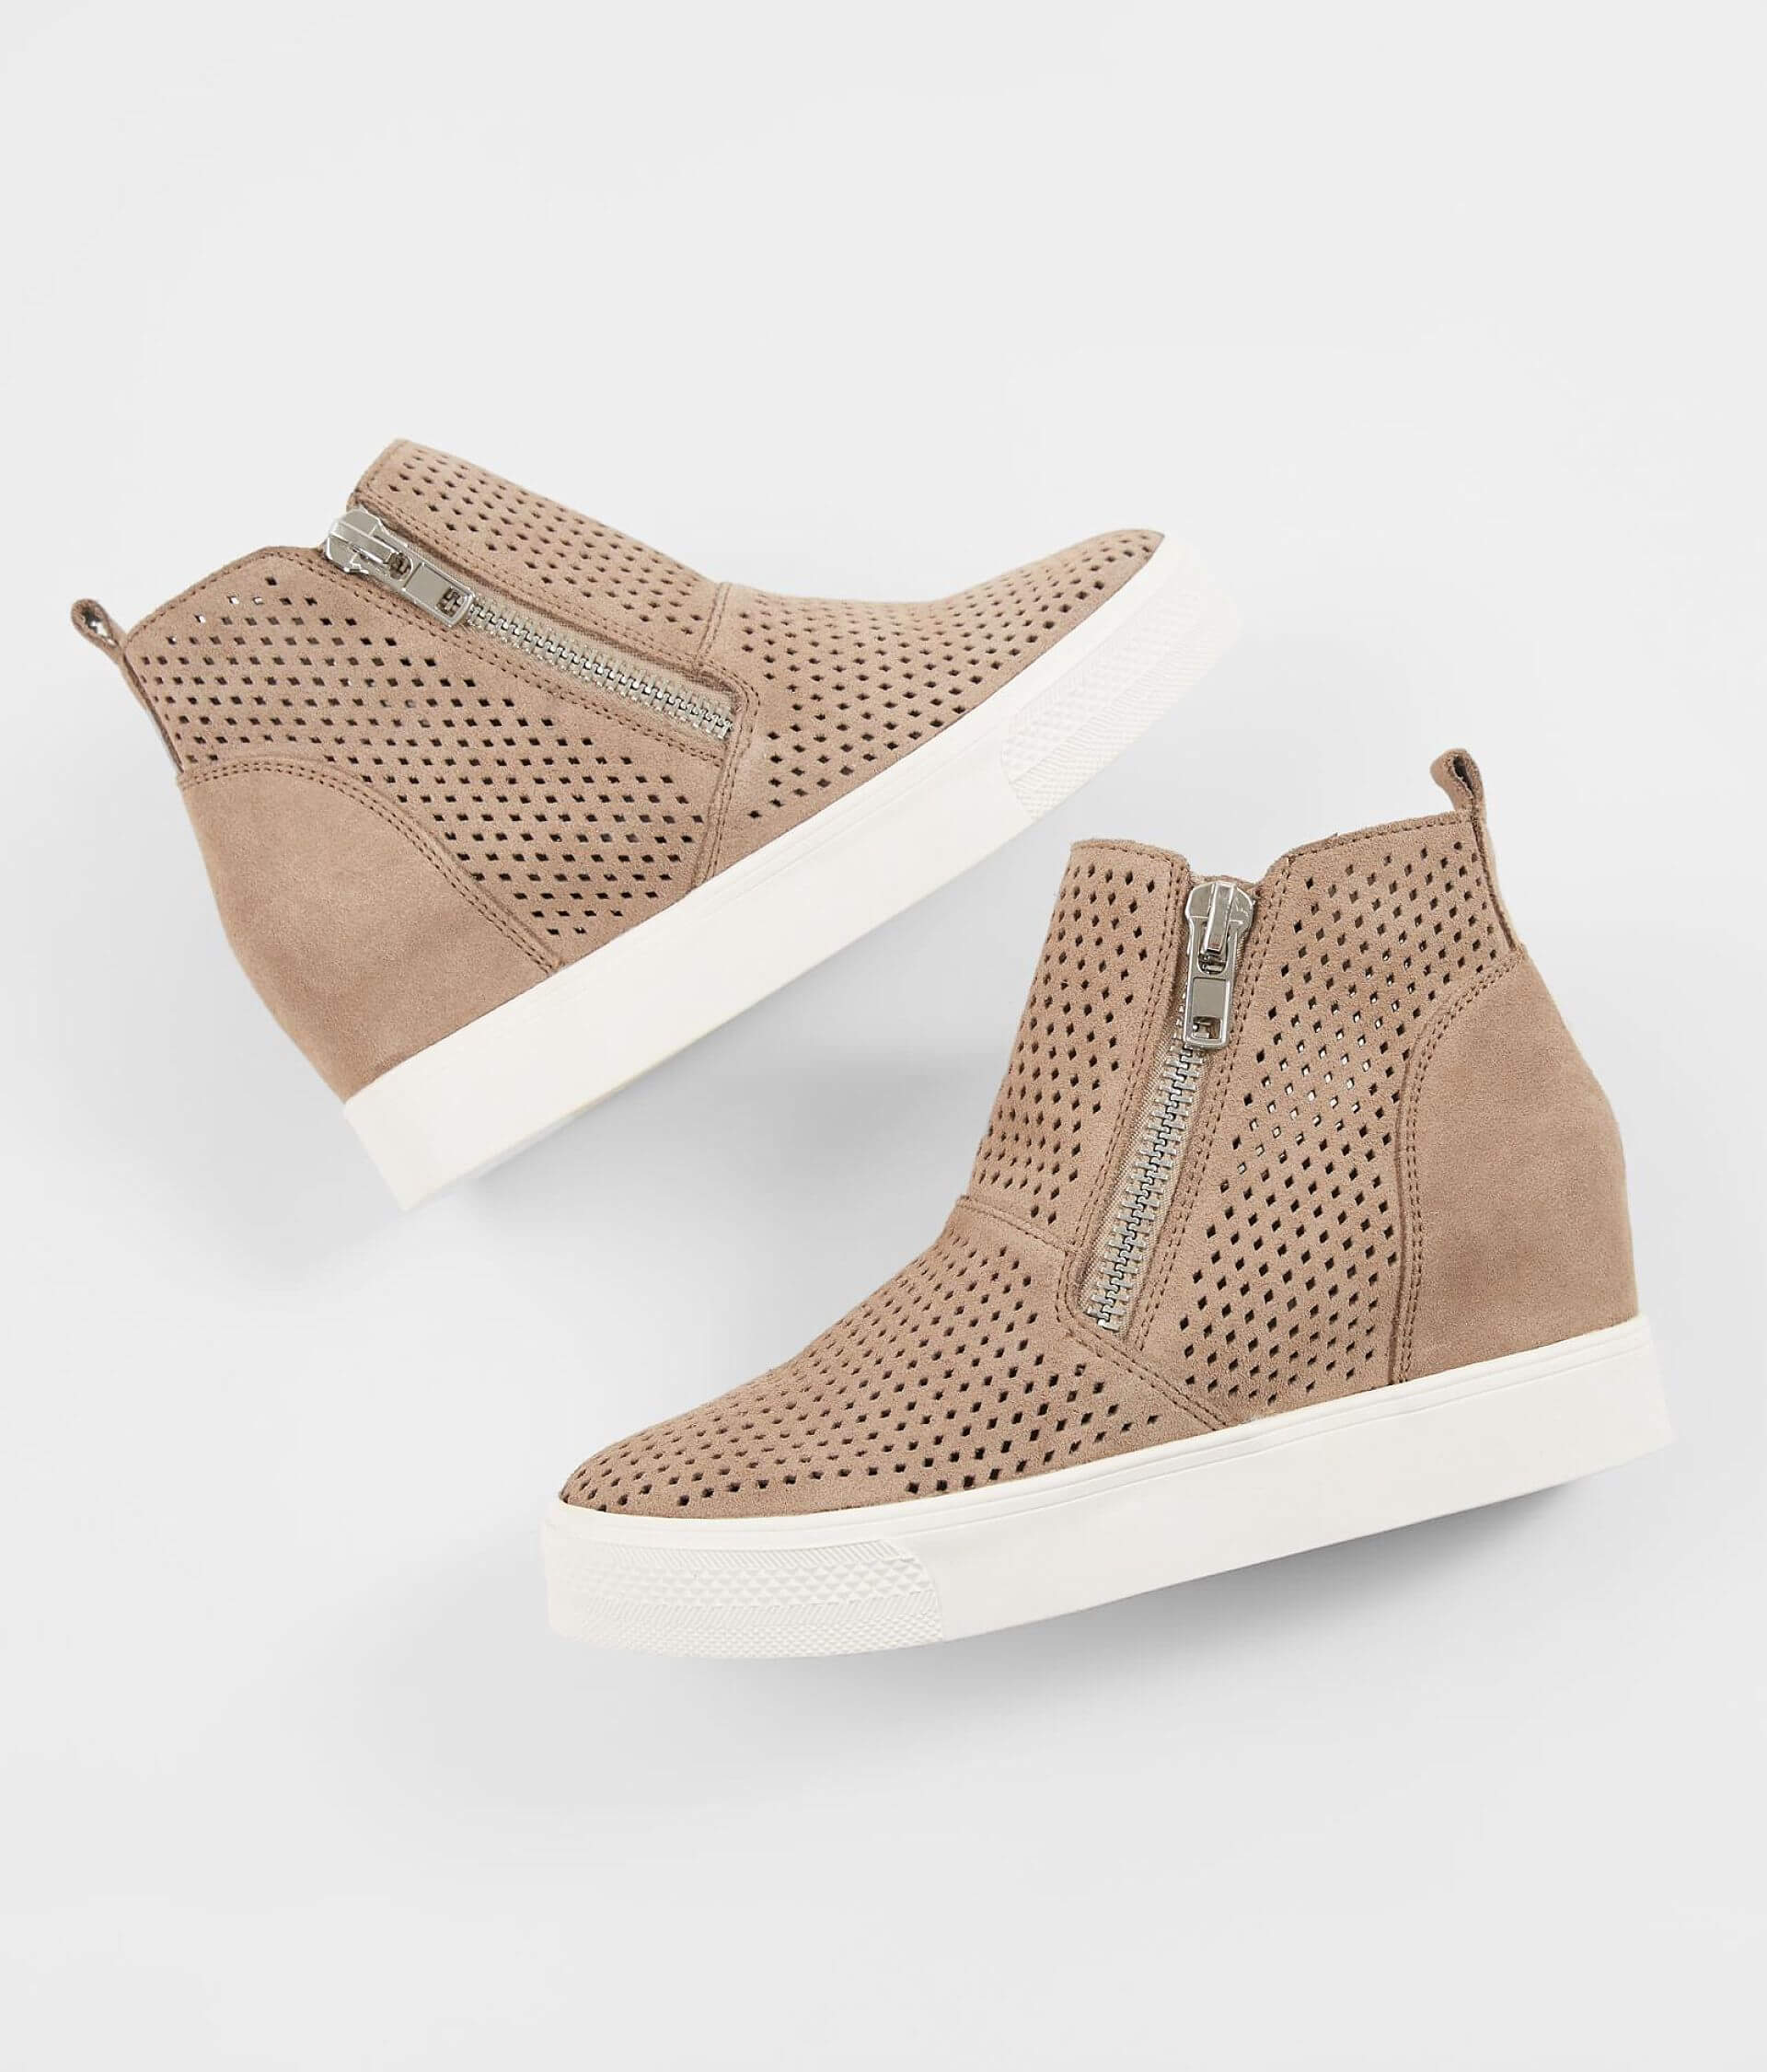 27402e62319 Steve Madden Wedgie P Shoe - Women's Shoes in Taupe   Buckle